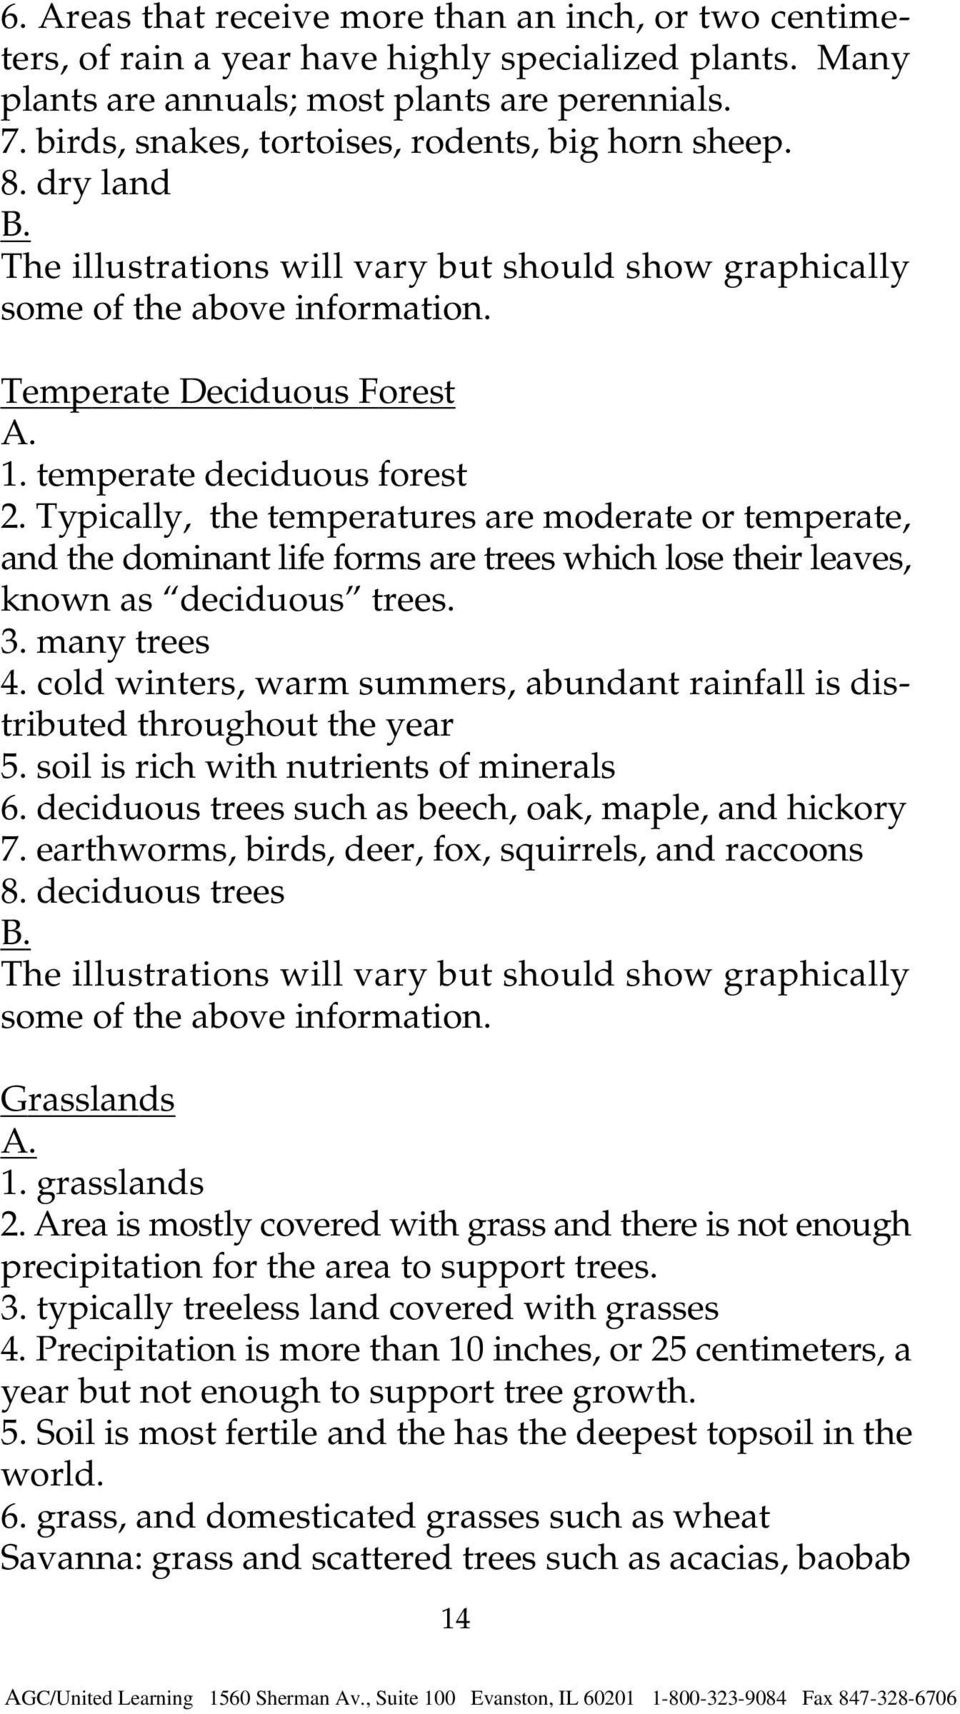 temperate deciduous forest 2. Typically, the temperatures are moderate or temperate, and the dominant life forms are trees which lose their leaves, known as deciduous trees. 3. many trees 4.